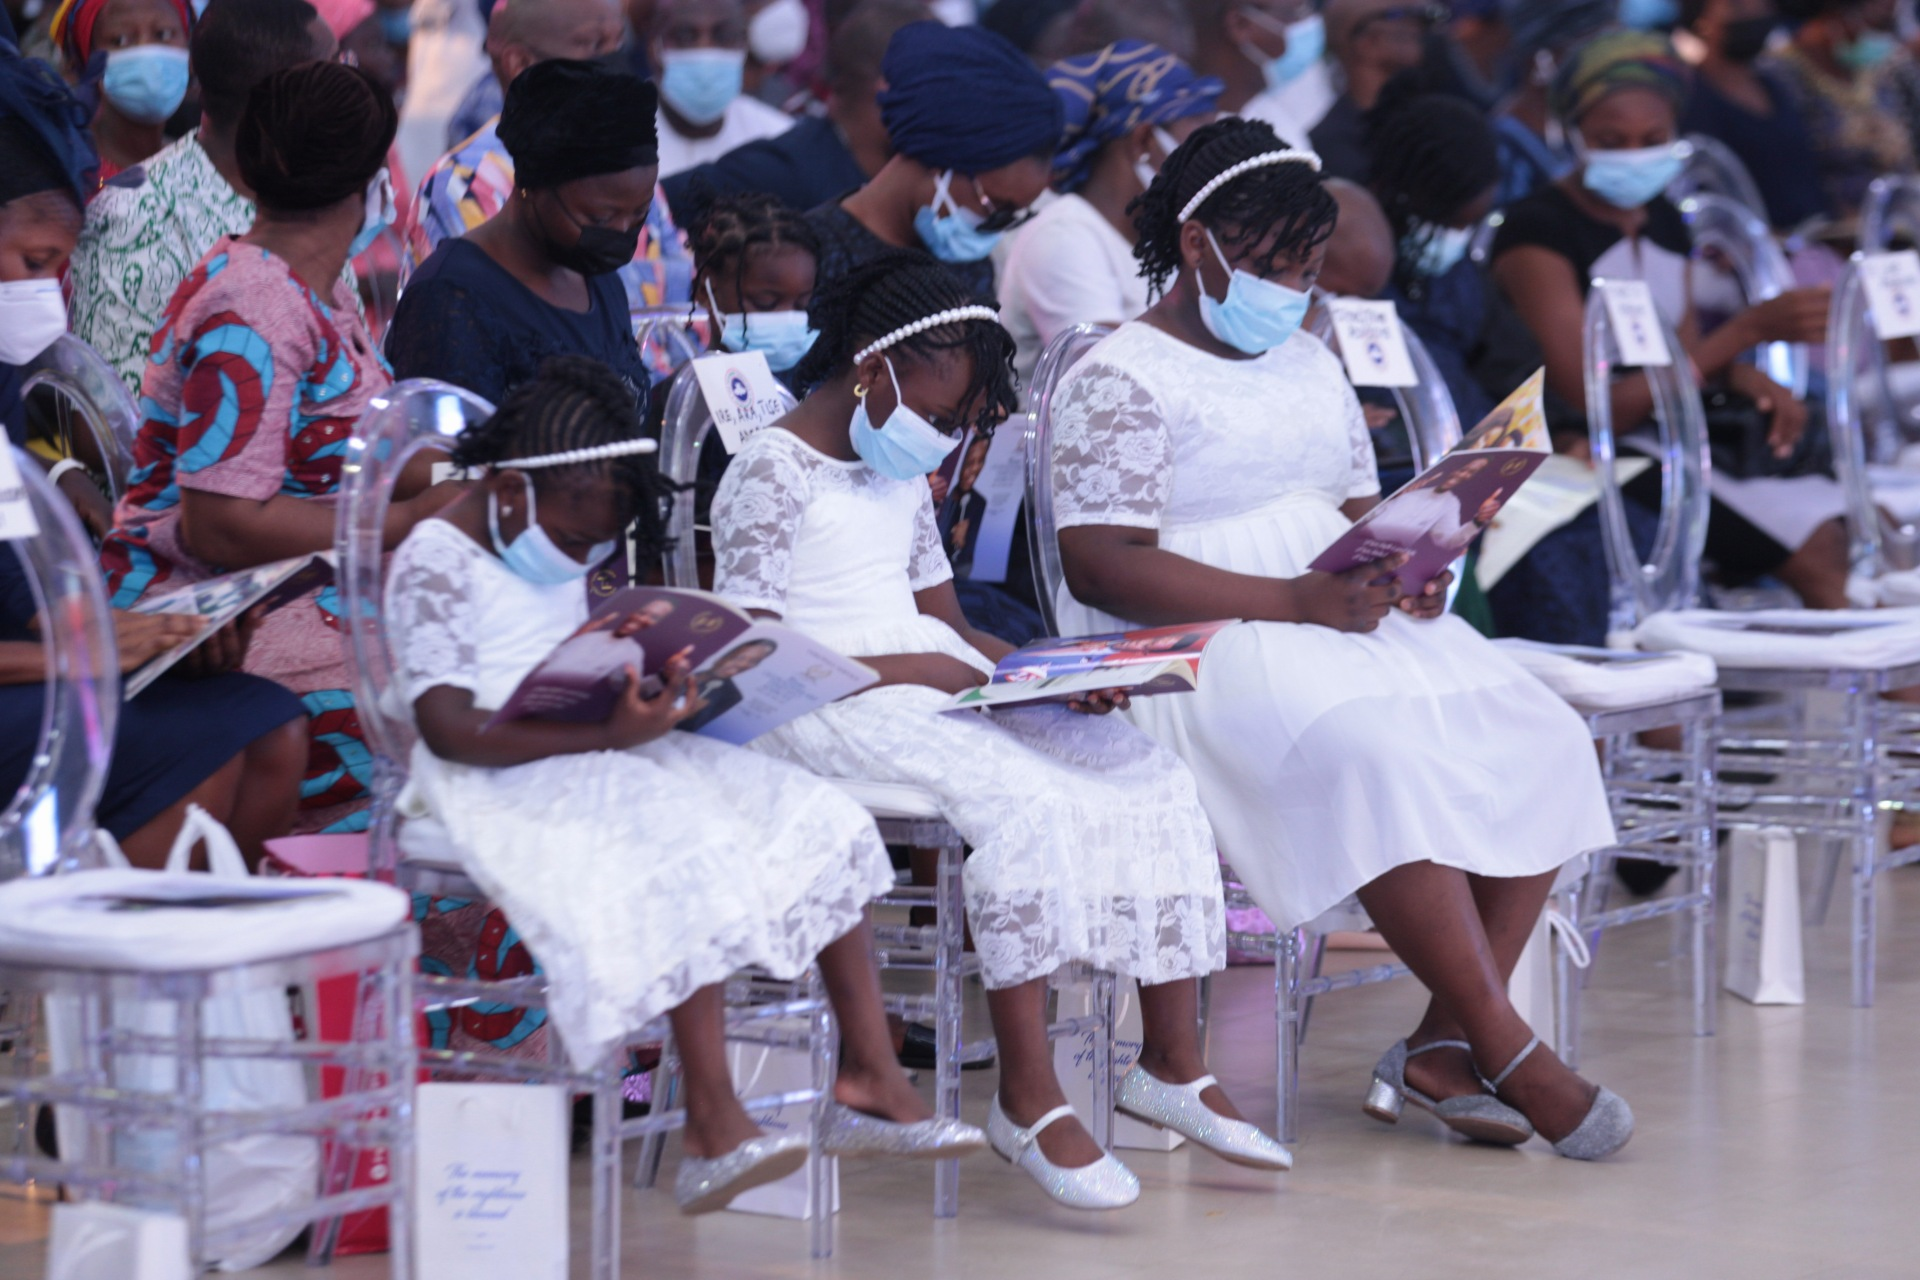 Pastor Dare Adeboye's three daughters at the farewell service at the Youth Centre, Redemption Camp